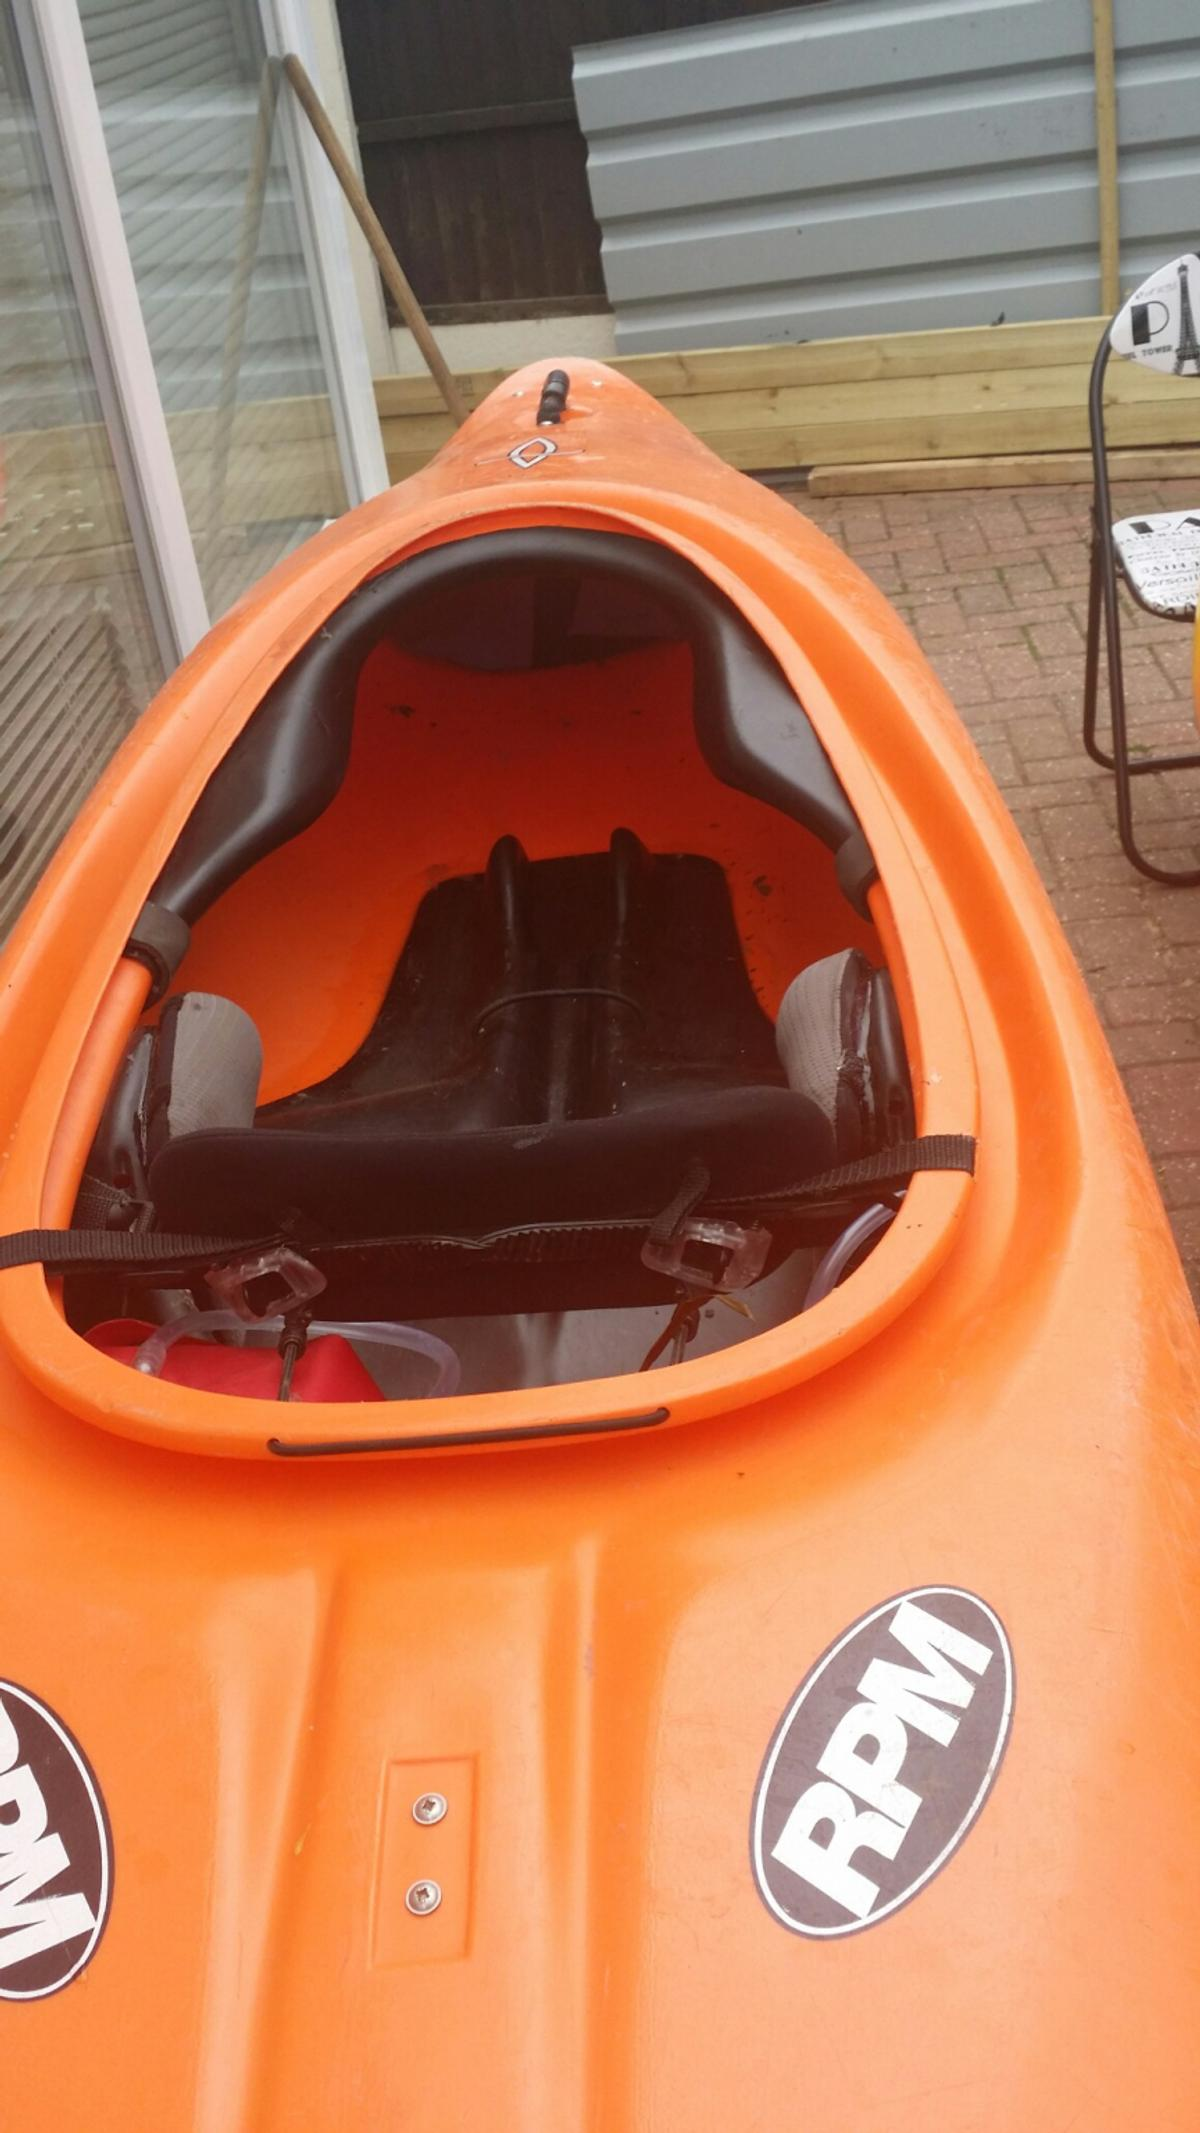 dagger RPM kayak in WS11 Walsall for £150 00 for sale - Shpock